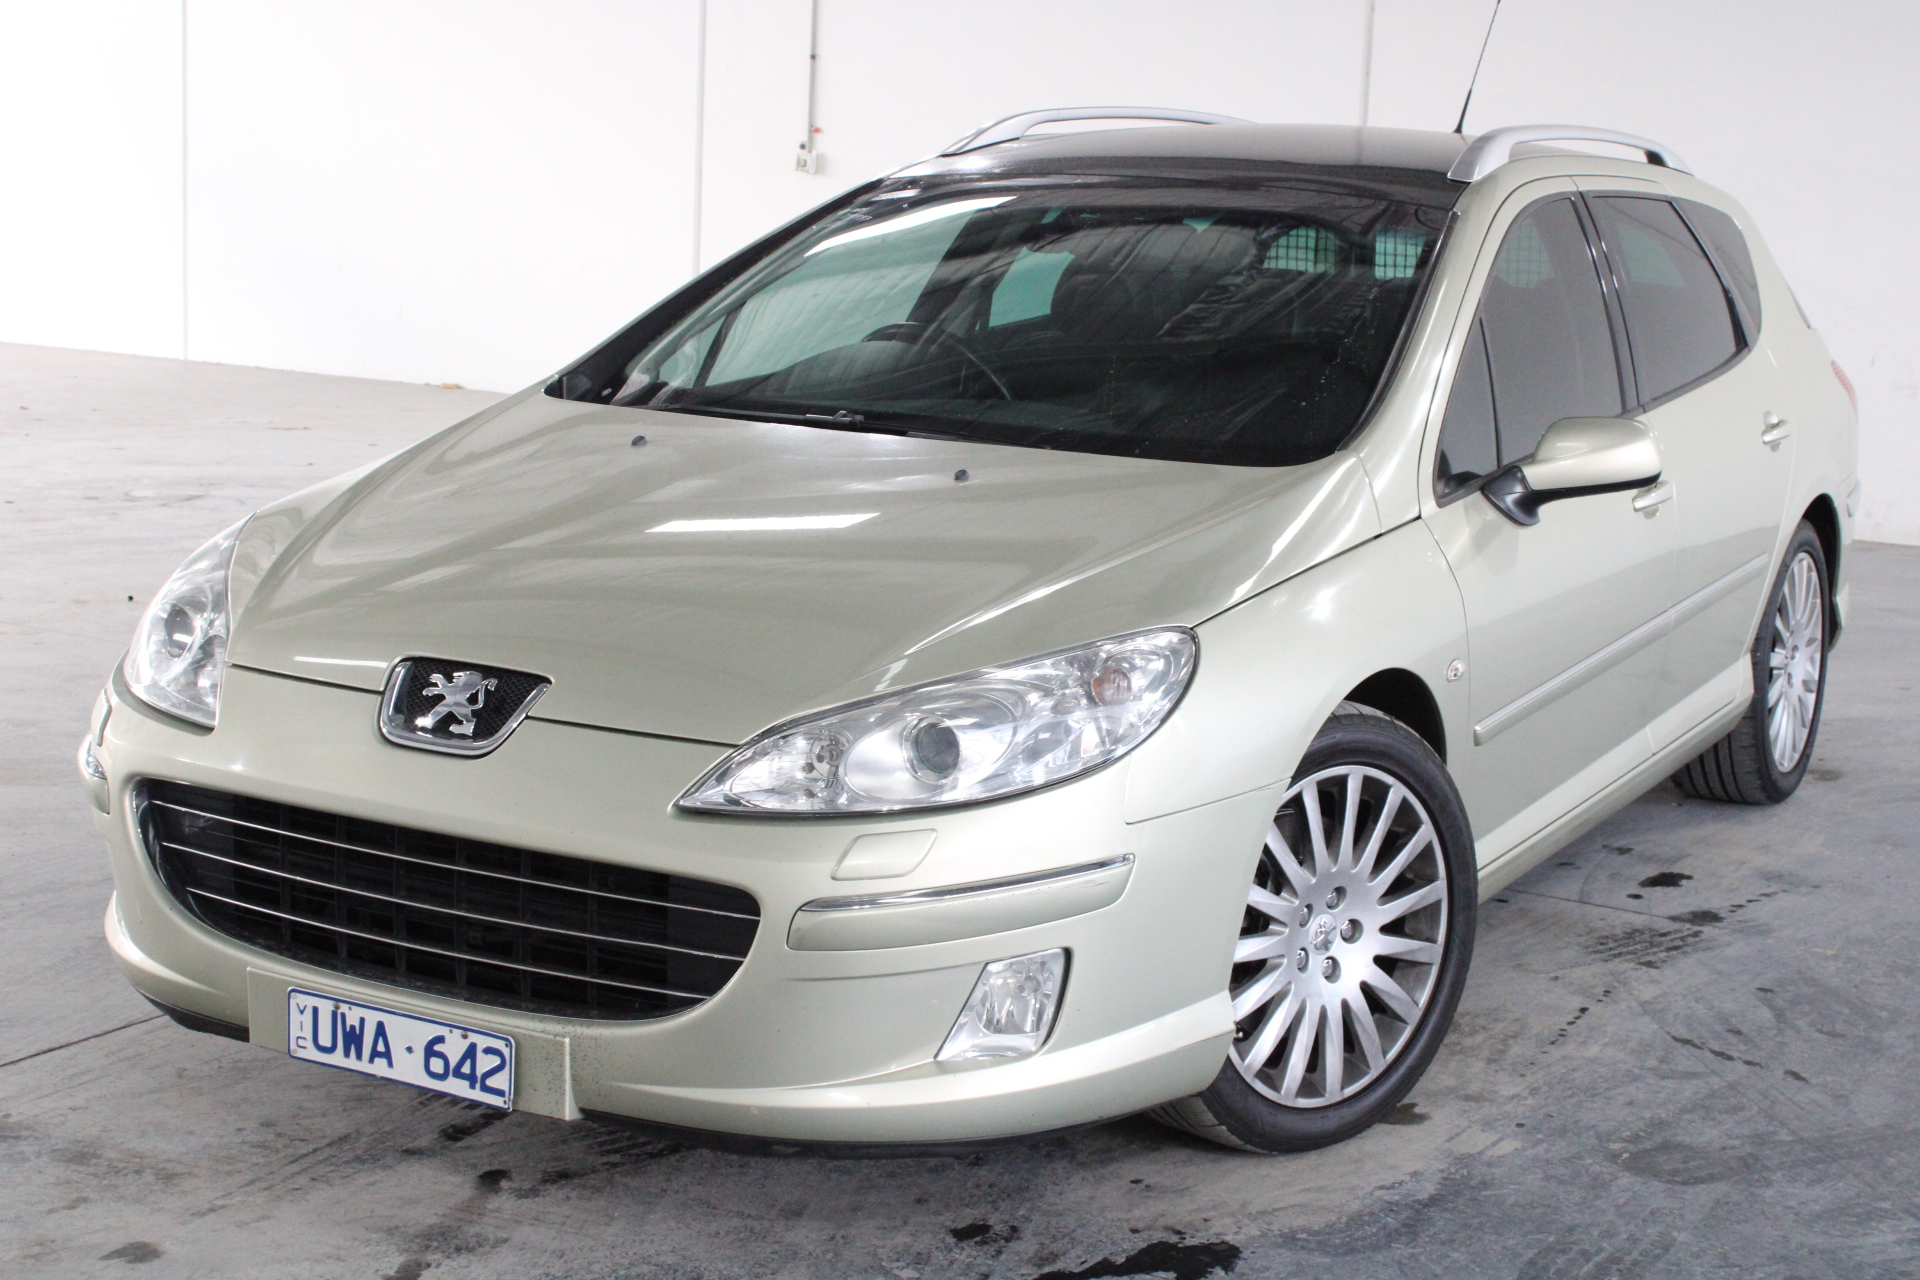 2007 Peugeot 407 SV HDi Touring Turbo Diesel Automatic Wagon